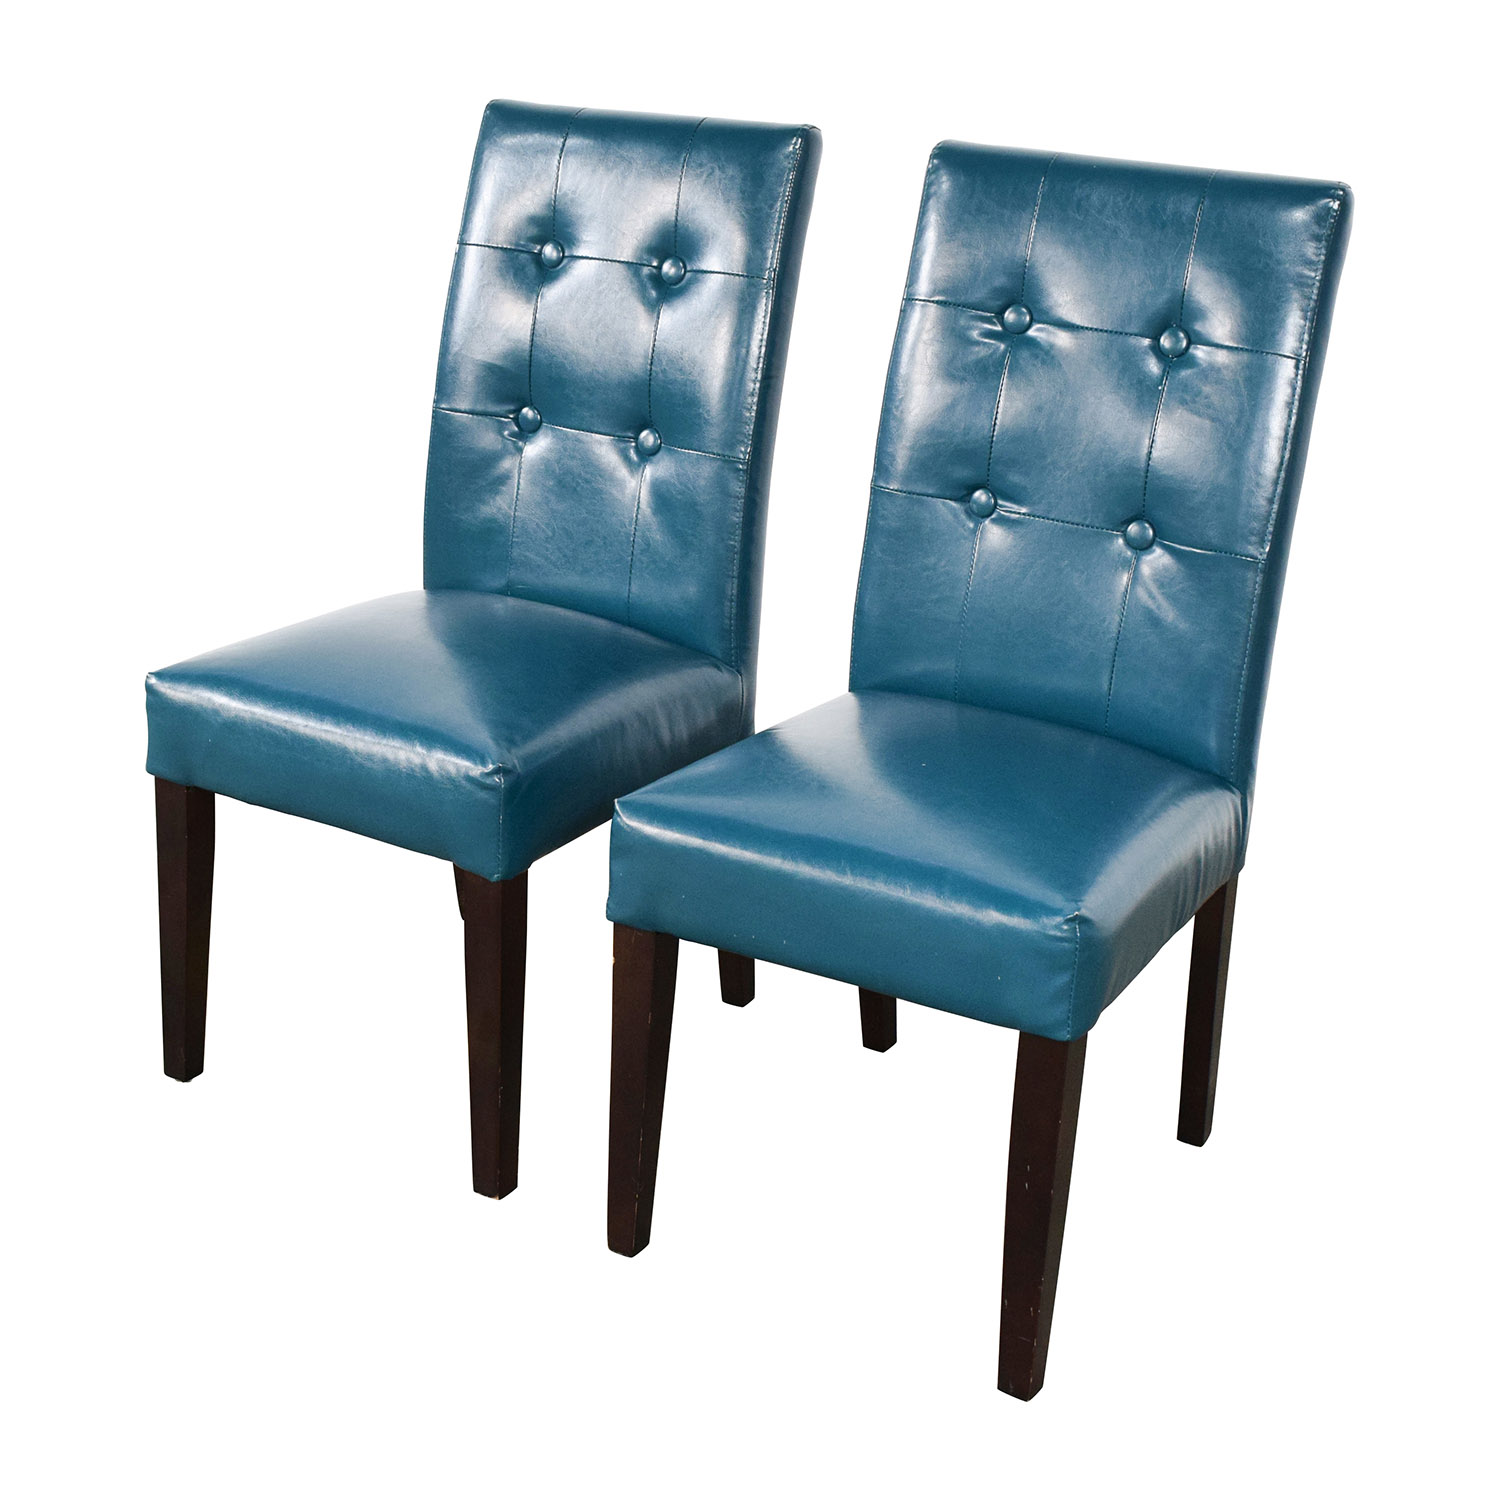 Pier 1 Imports Mason Collection Teal Dining Chairs